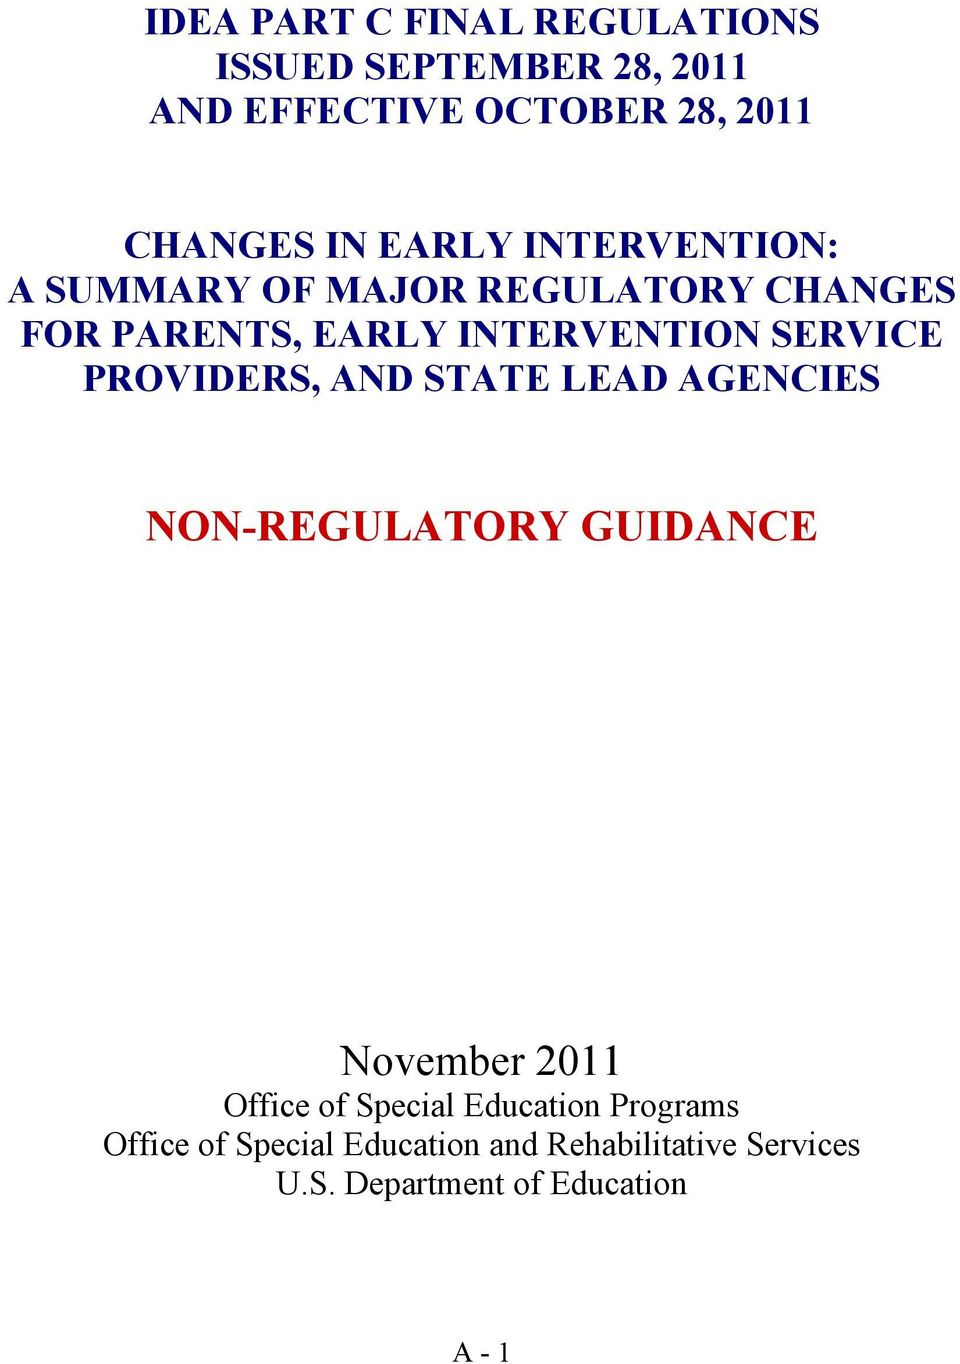 PROVIDERS, AND STATE LEAD AGENCIES NON-REGULATORY GUIDANCE November 2011 Office of Special